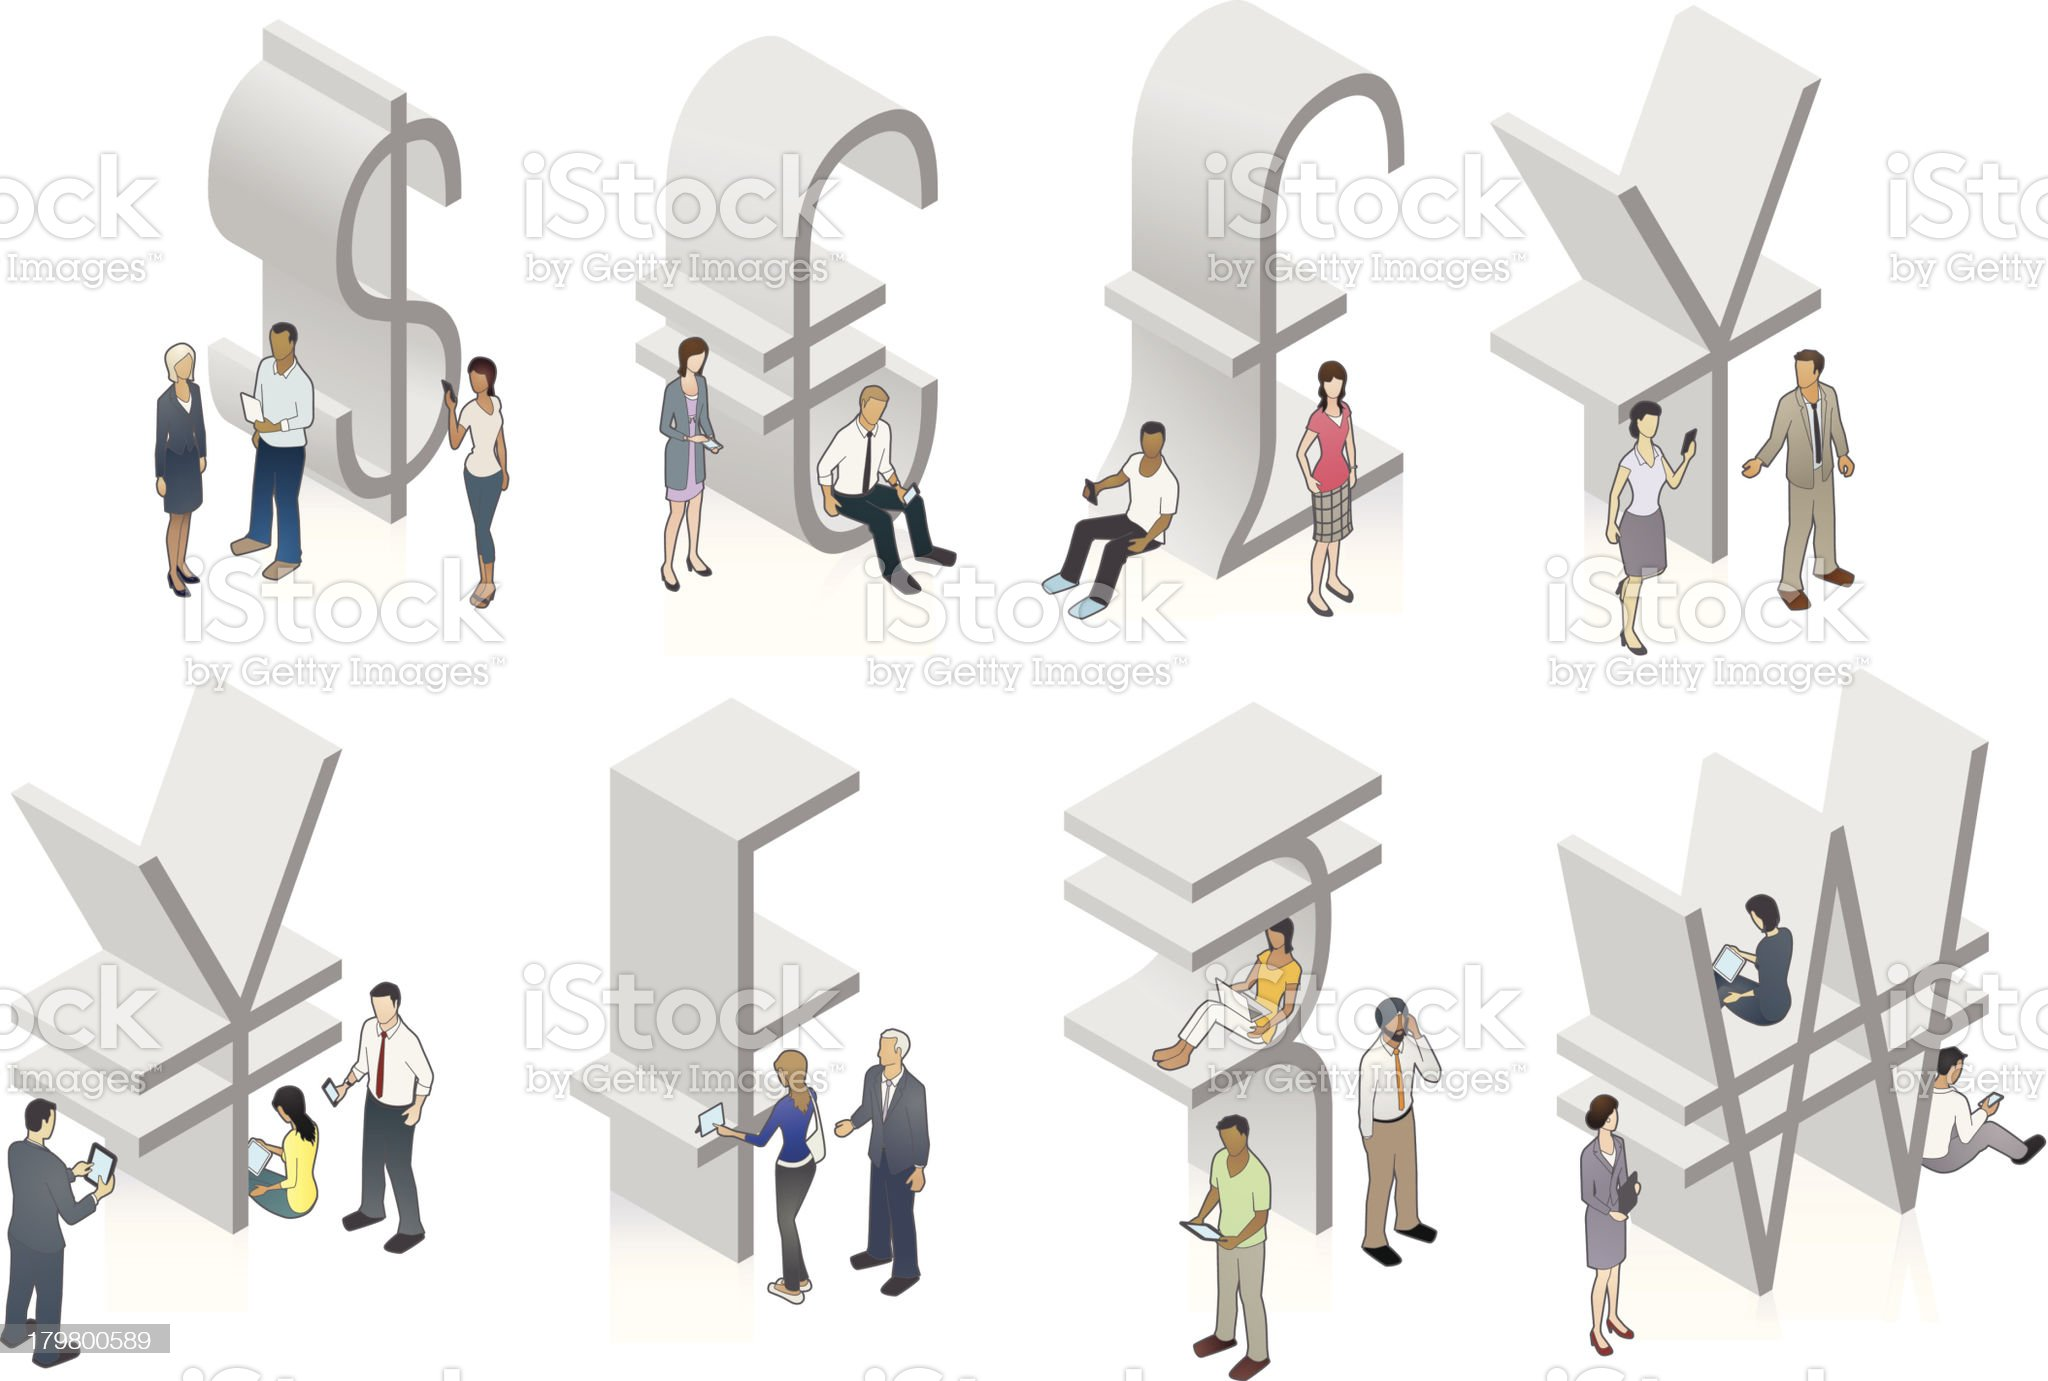 Currency symbol illustrations with people royalty-free stock vector art